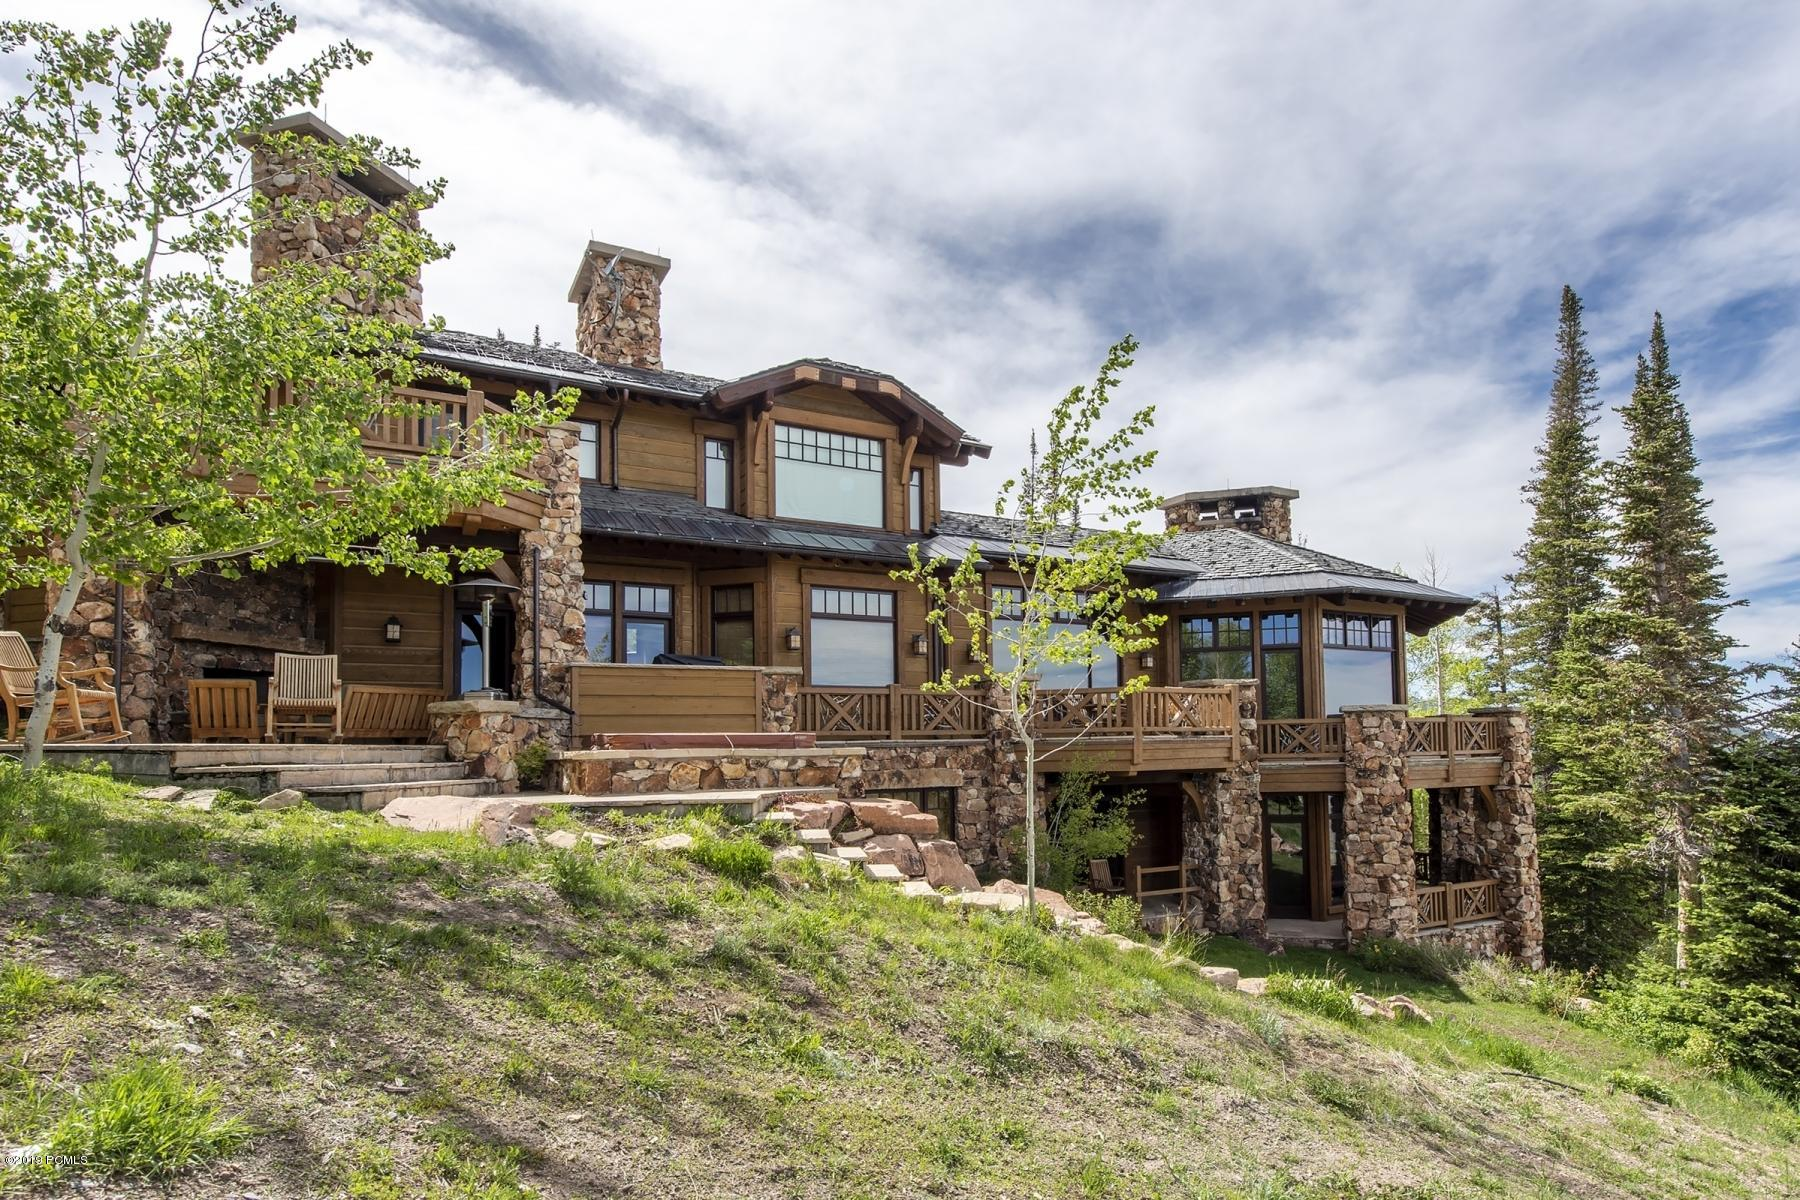 110 White Pine Canyon Road, Park City, Utah 84060, 8 Bedrooms Bedrooms, ,10 BathroomsBathrooms,Single Family,For Sale,White Pine Canyon,20190109112430415765000000